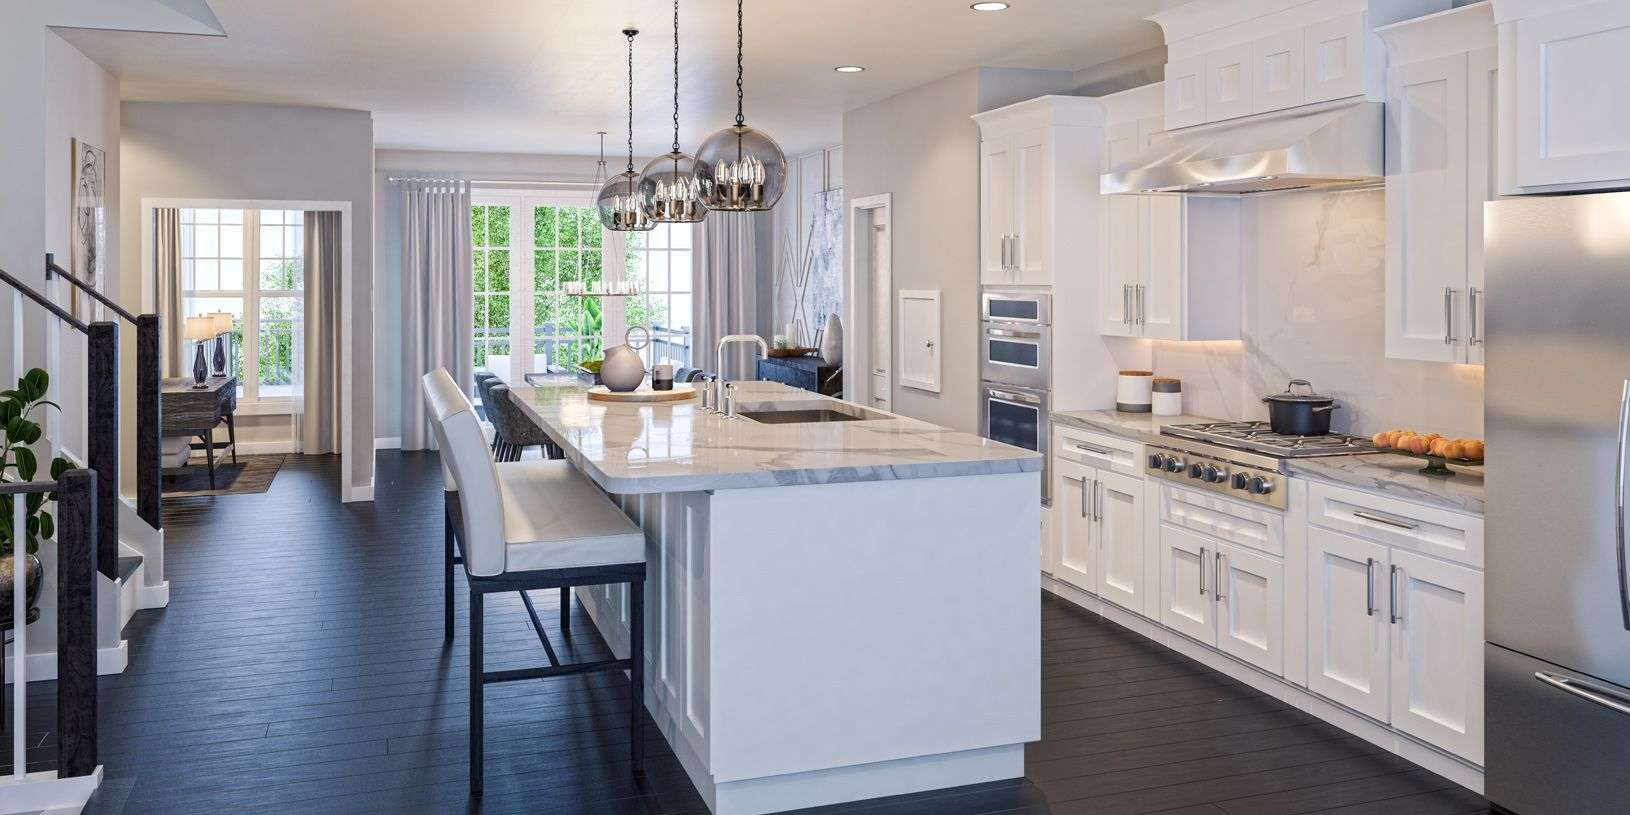 Kitchen featured in the Briercliff By Toll Brothers in Bergen County, NJ